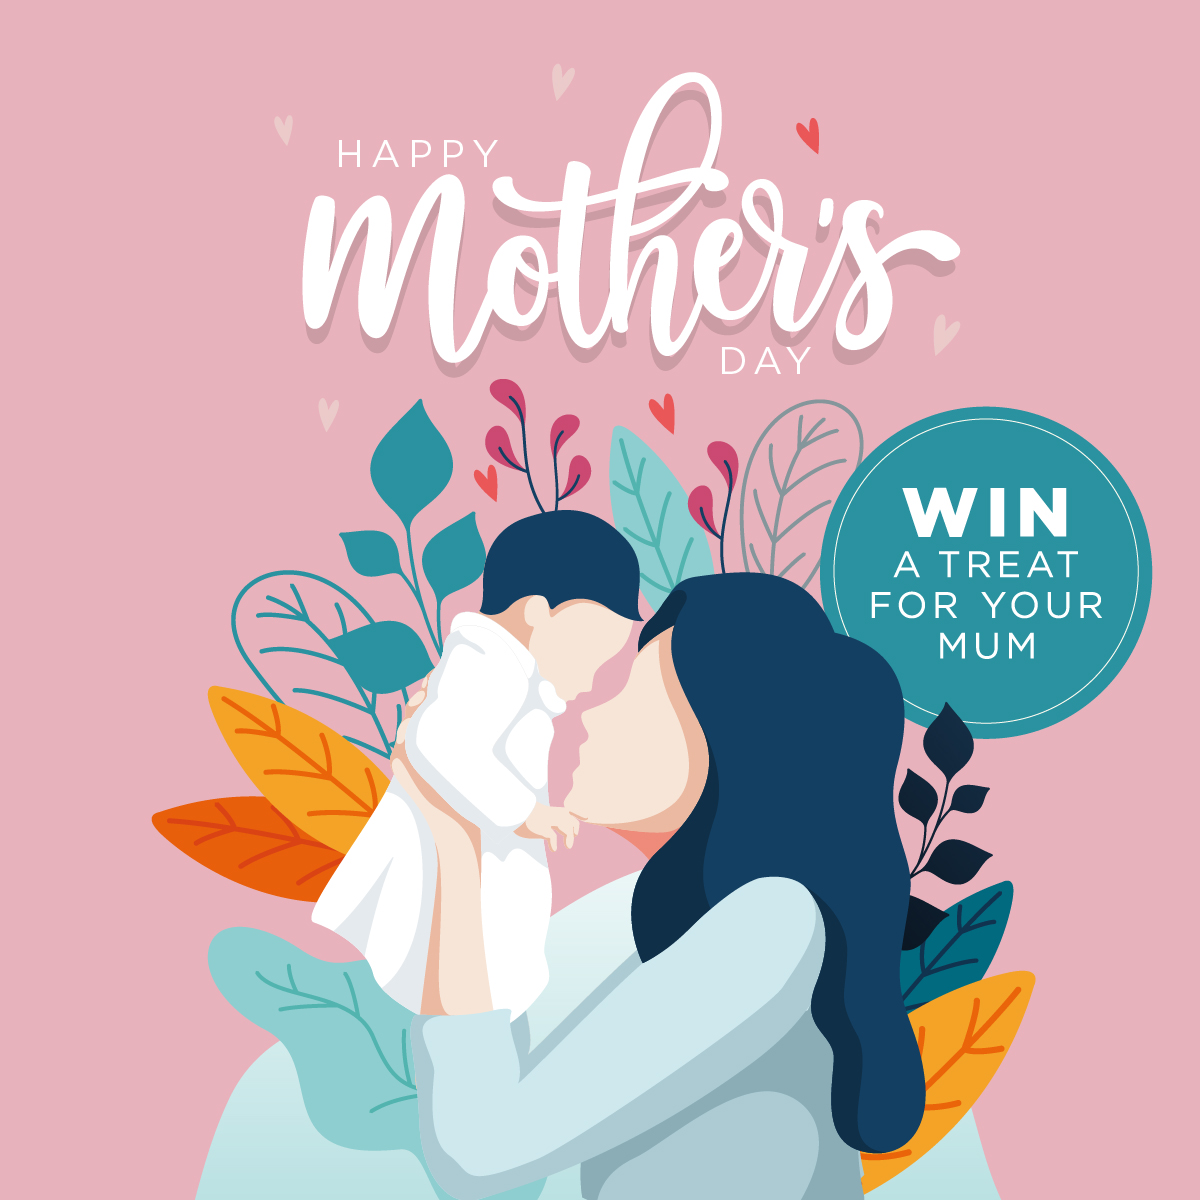 Win an Amazing Mother's Day Prize!